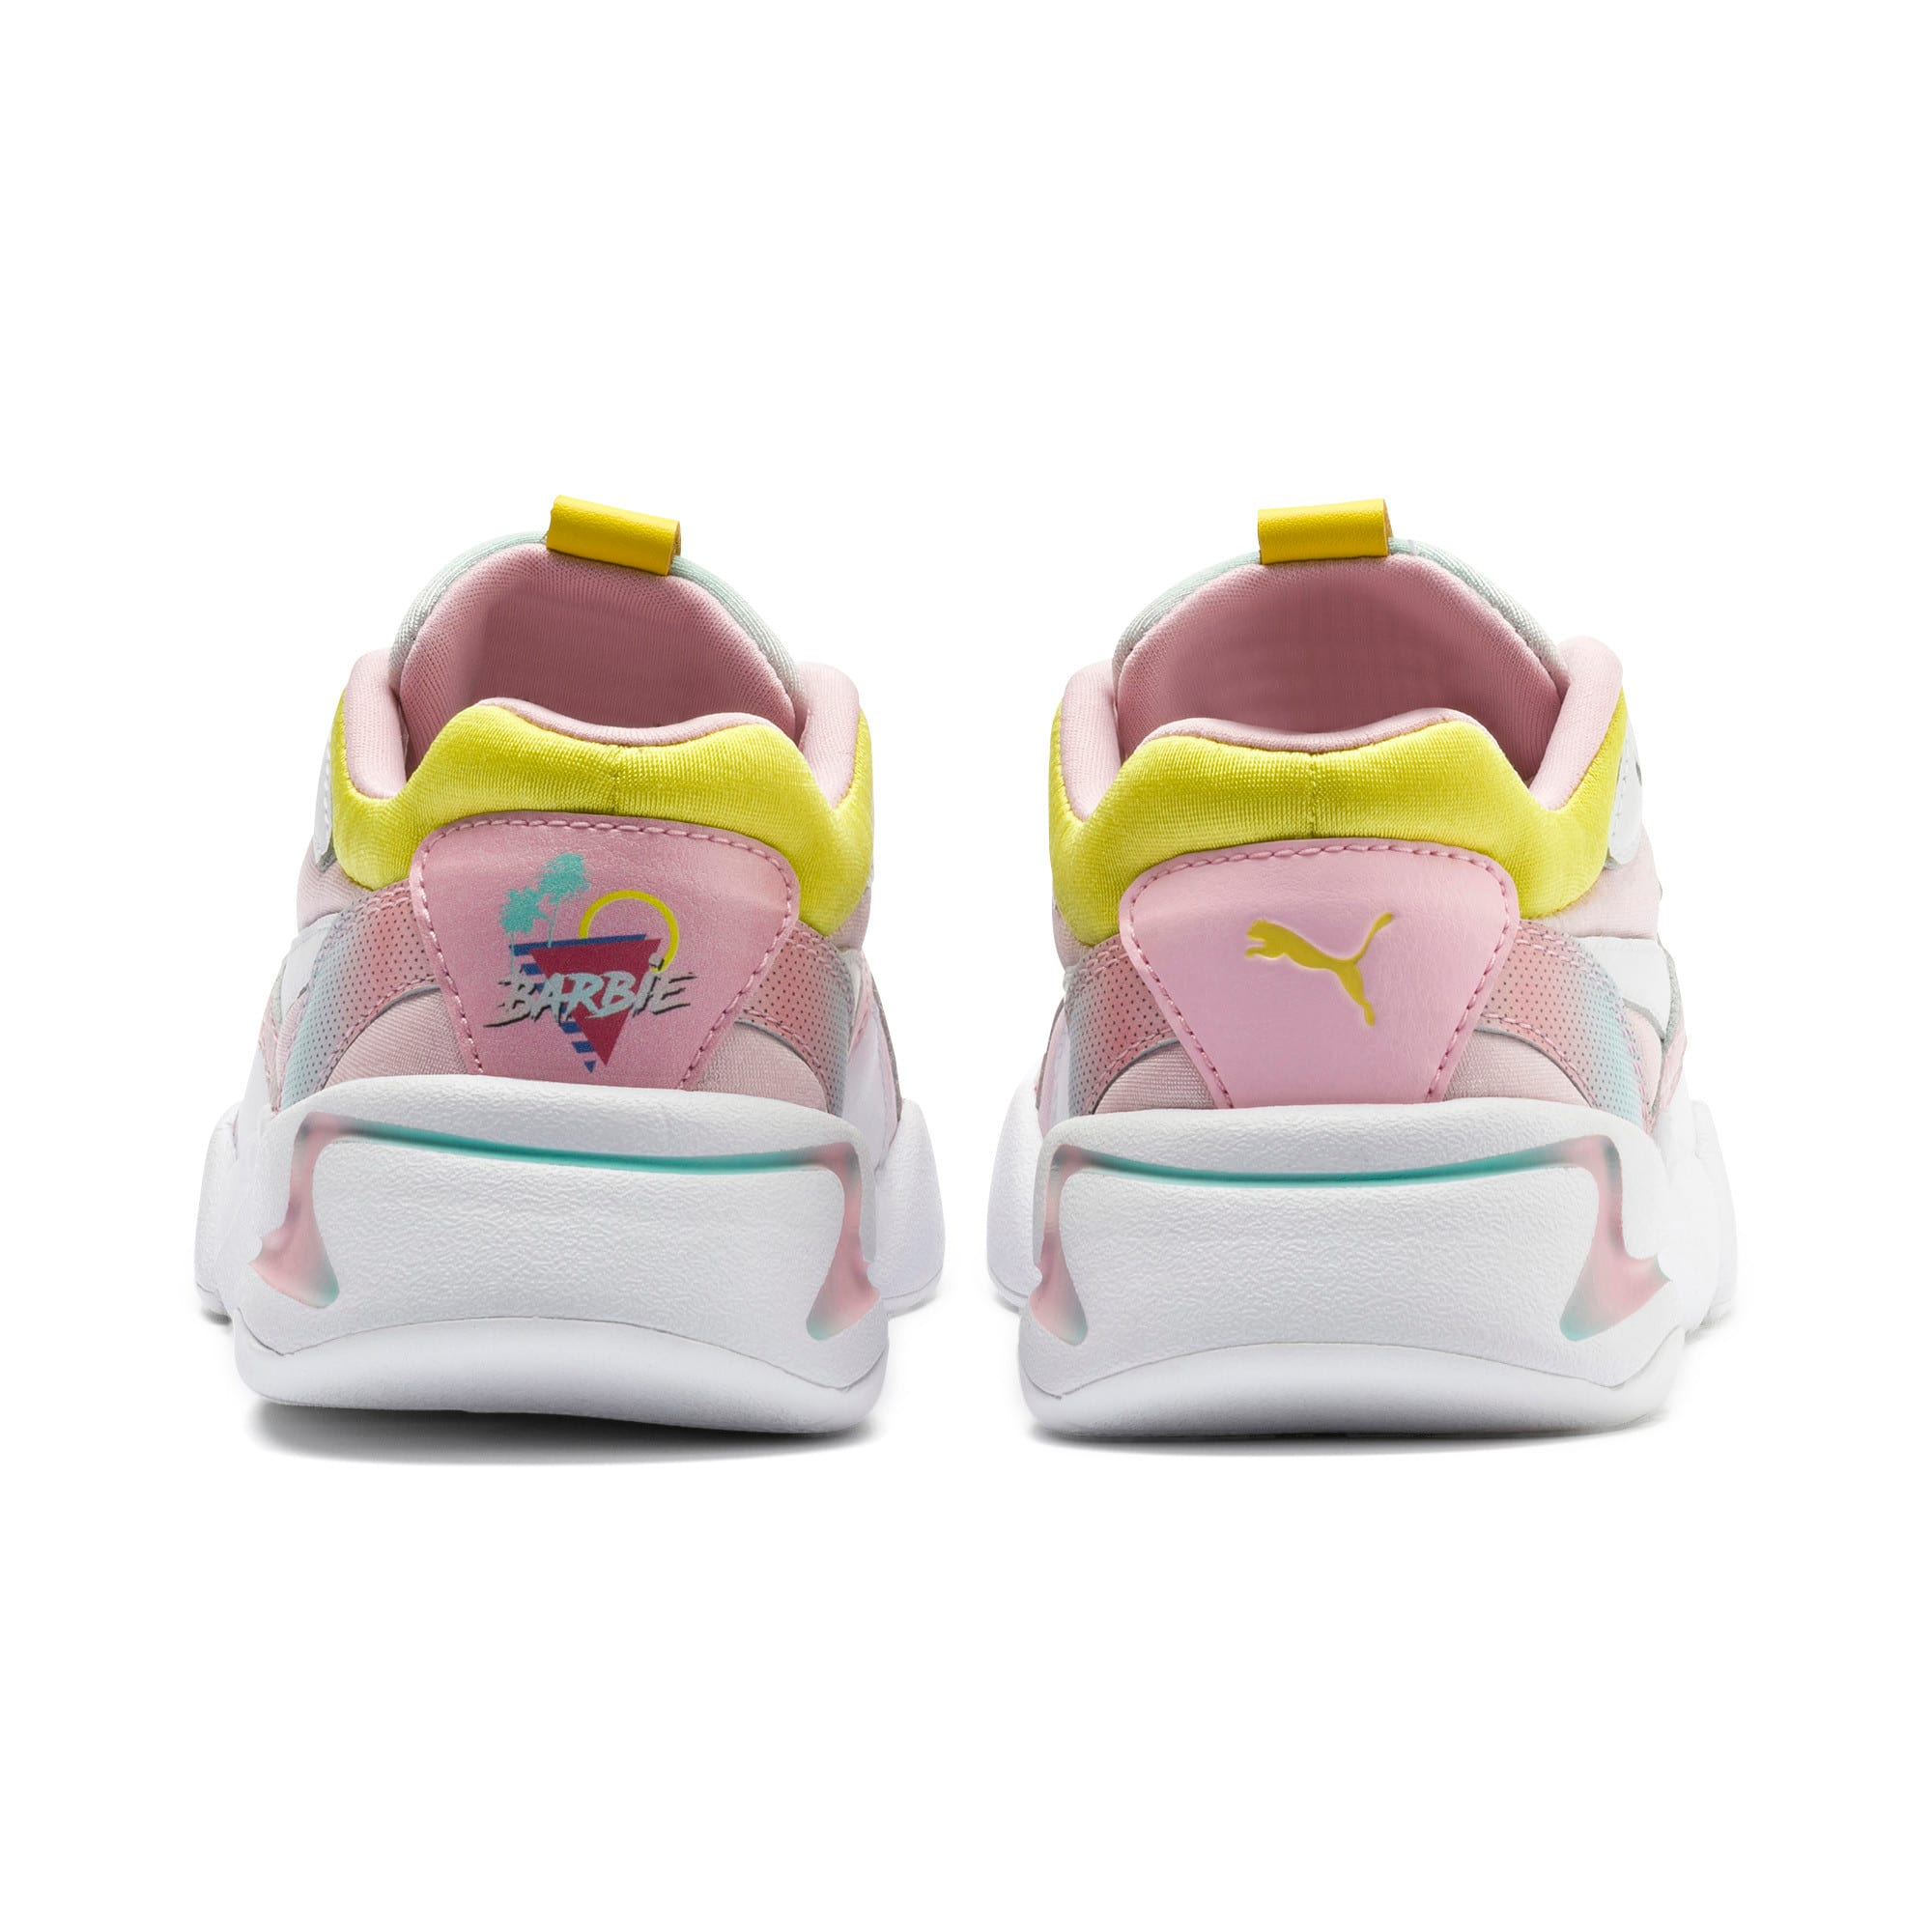 Thumbnail 3 of Nova x Barbie Little Kids' Shoes, Orchid Pink-Puma White, medium